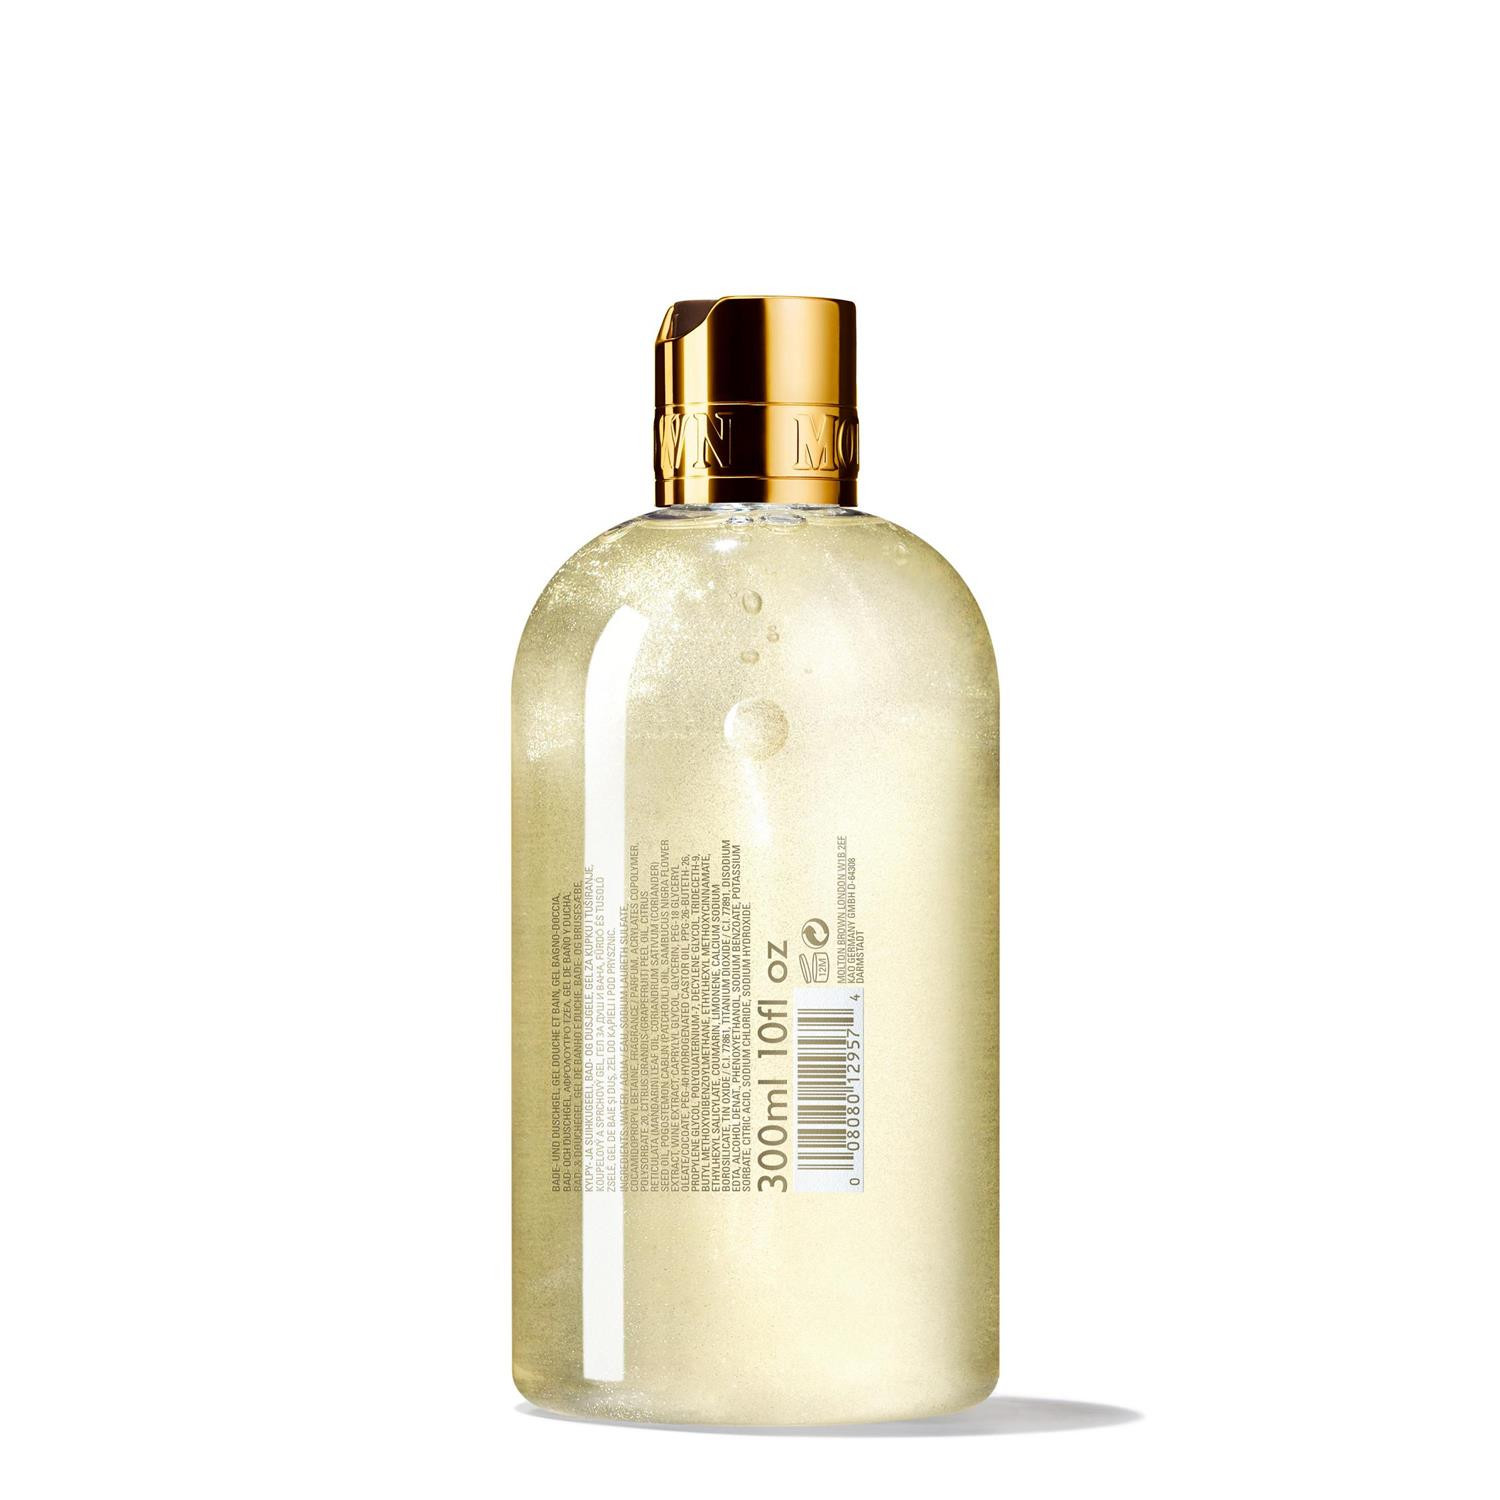 Vintage With Elderflower Bath & Shower Gel 300ml Nyheter